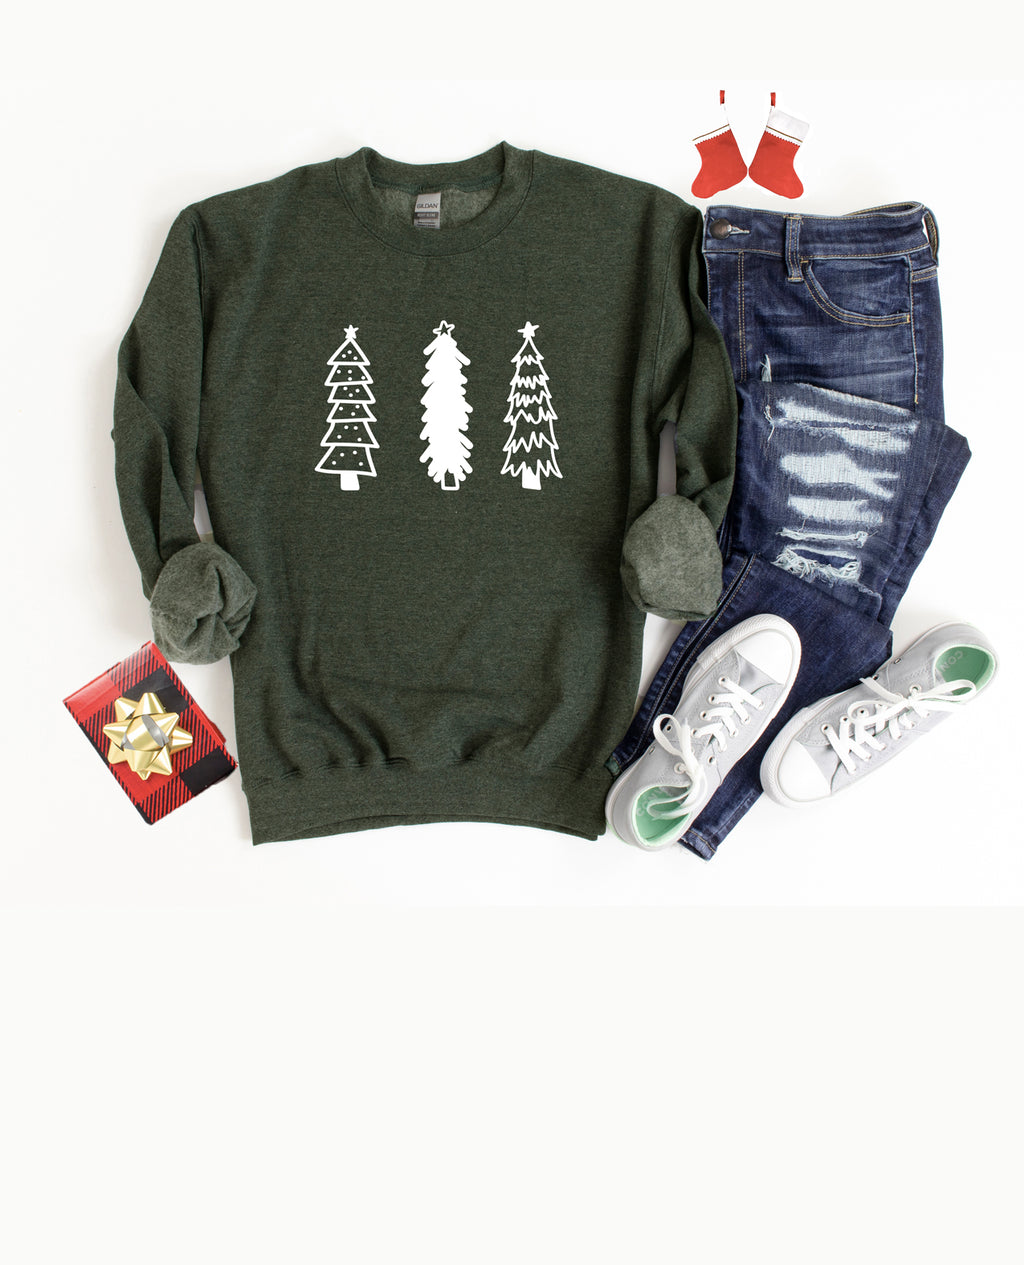 Be Merry this holiday season in our cute and cozy sweatshirt!